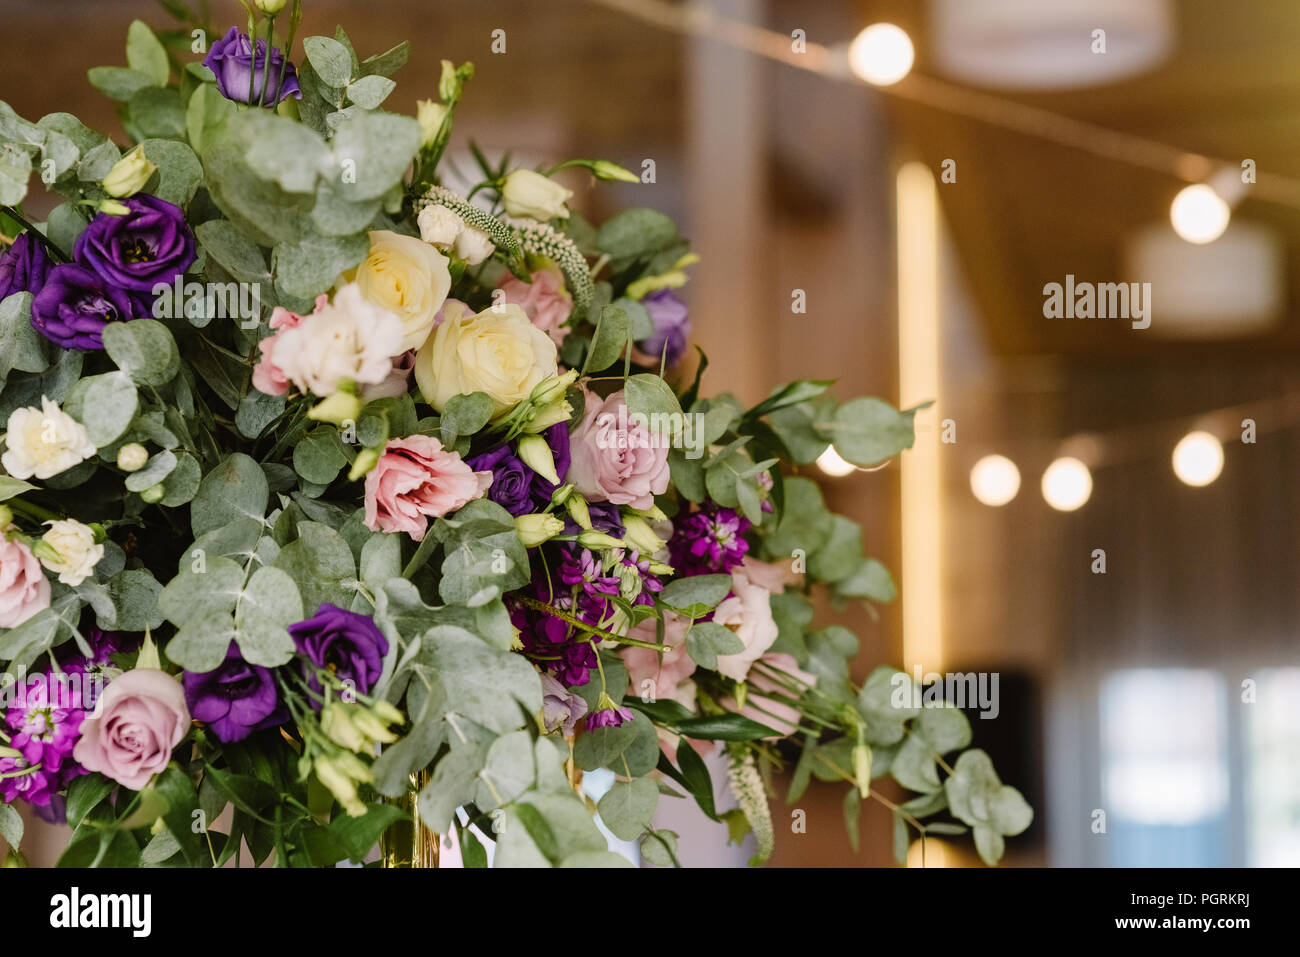 Decoration of a stylish beautiful wedding with flowers. - Stock Image